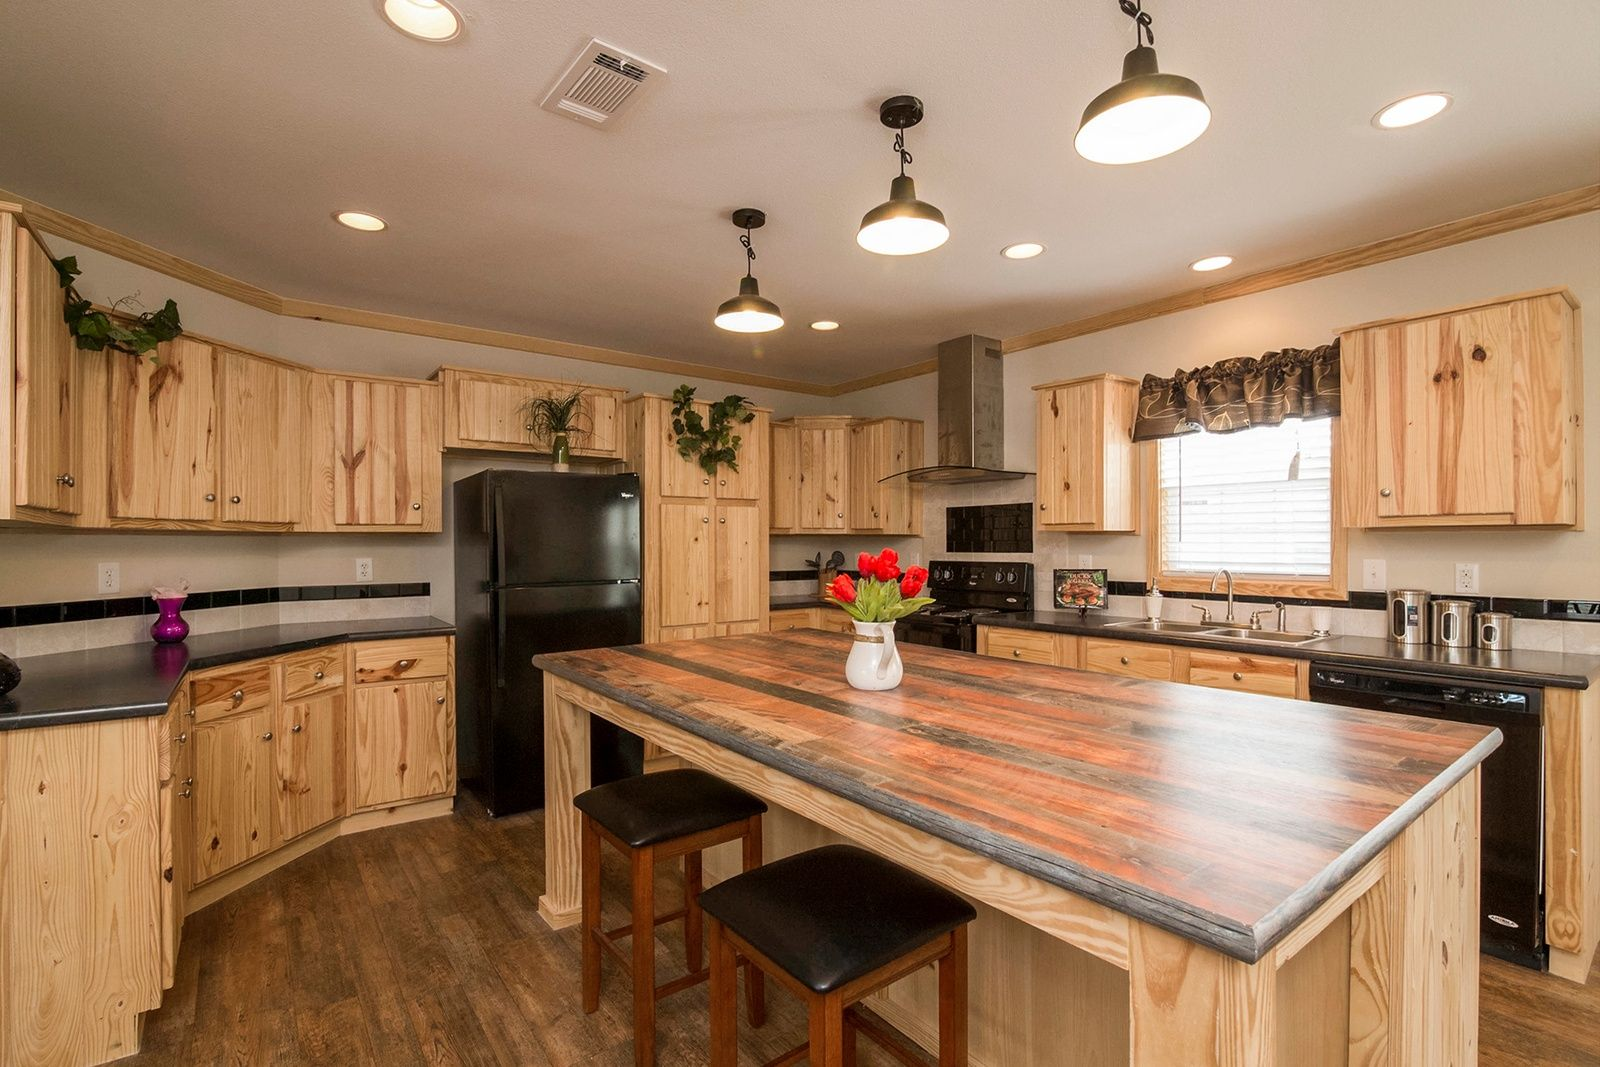 Rustic Kitchen With Knotty Pine Kitchen Cabinets And Wood